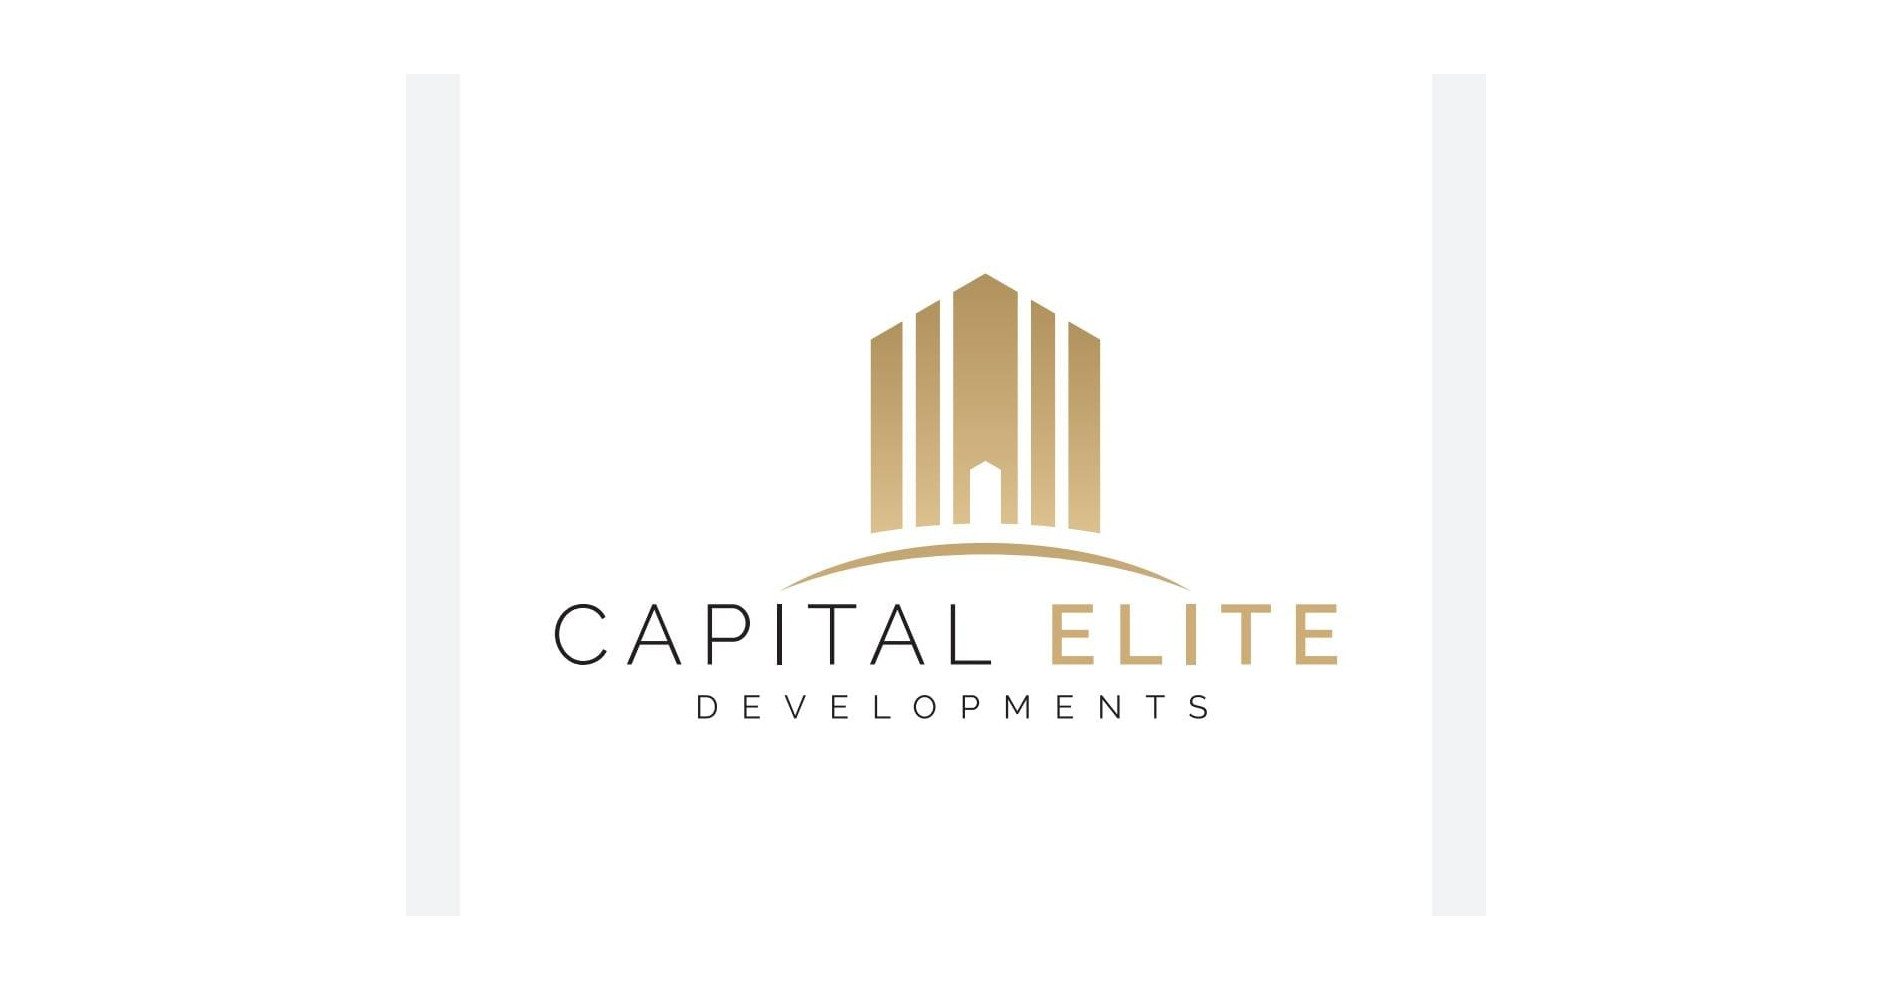 صورة Job: أمين مخزن at Capital elite for real estate development in Giza, Egypt